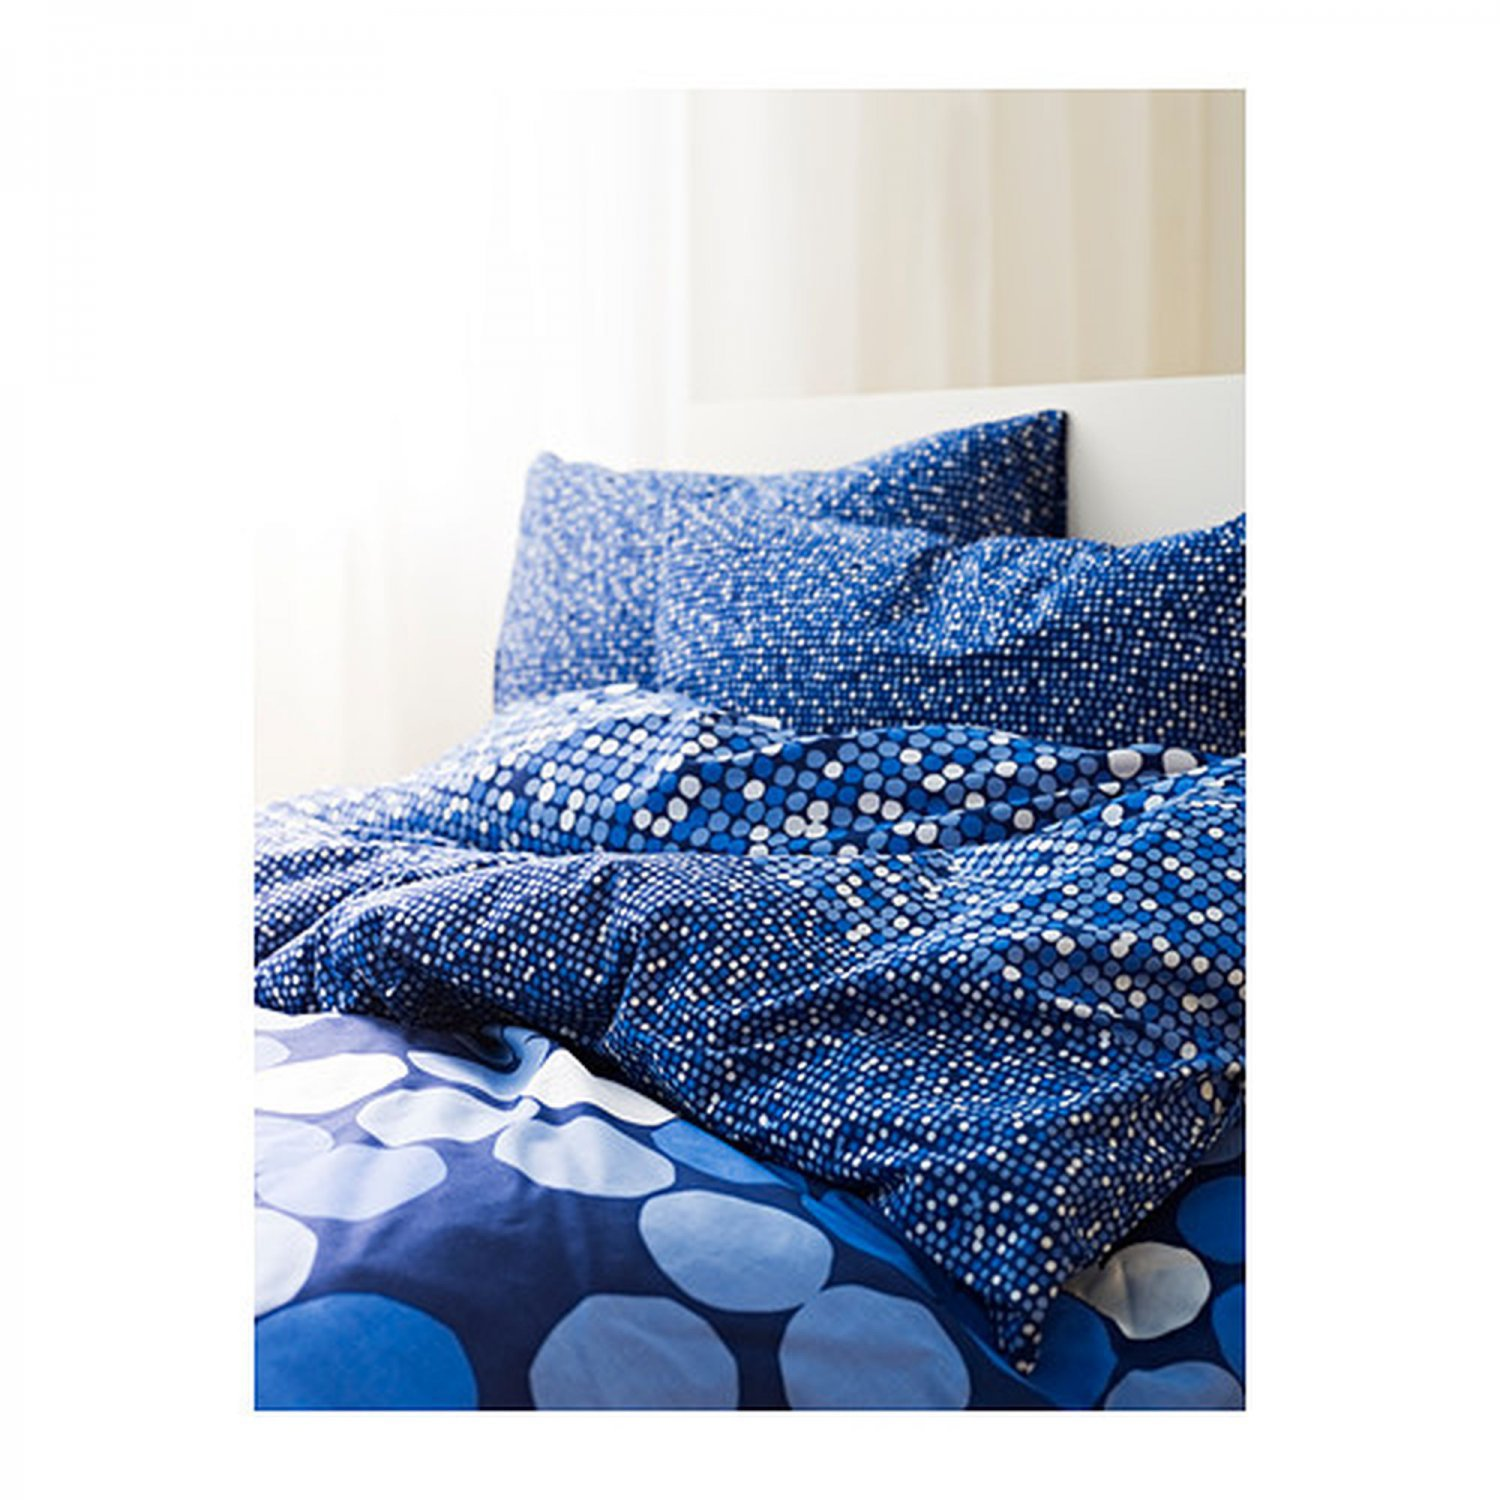 ikea sm rboll smorboll king size quilt duvet cover bedding